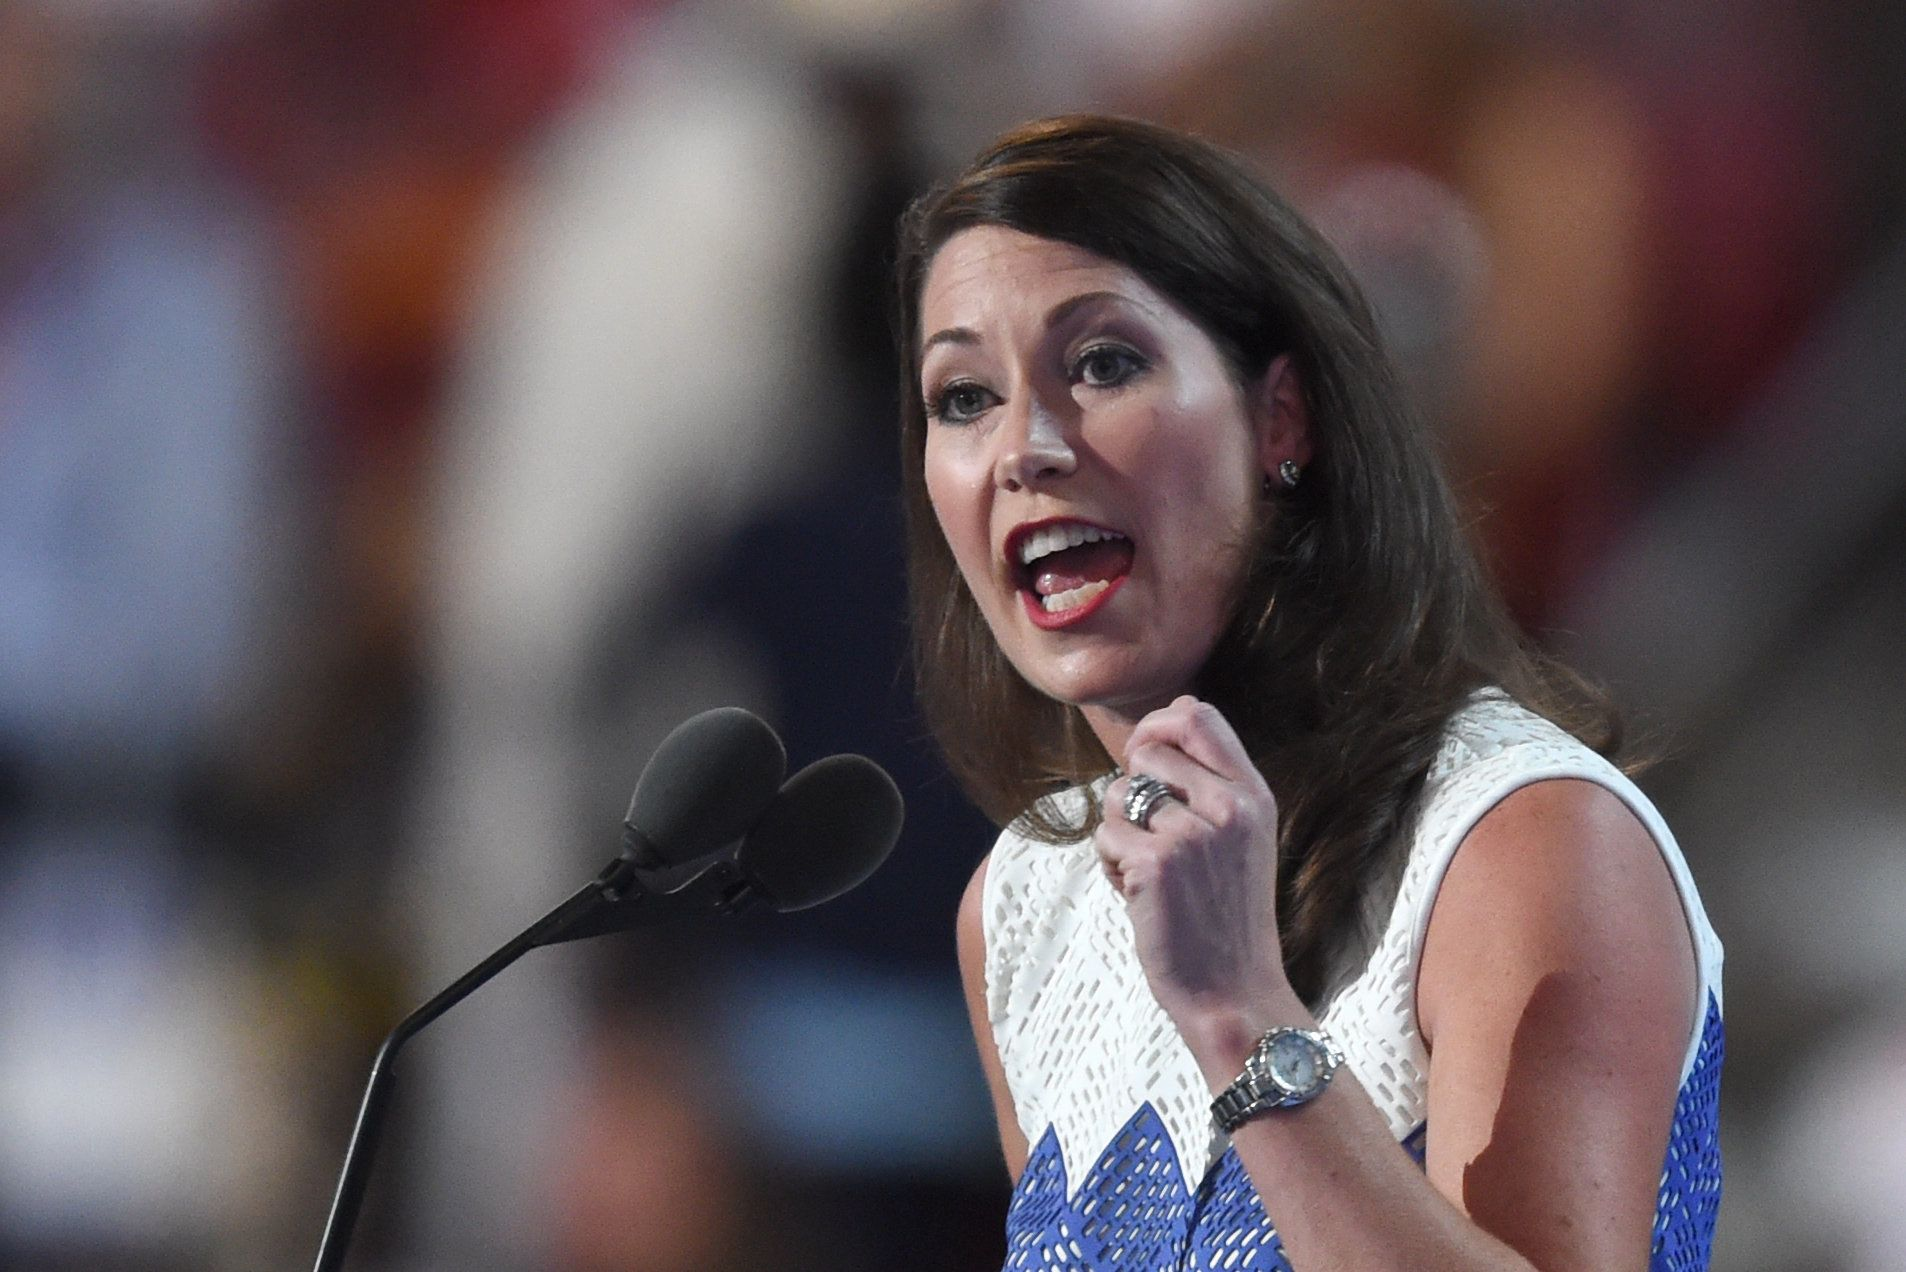 Kentucky Secretary of State Alison Lundergan Grimes speaks during Day 2 of the Democratic National Convention at the Wells Fargo Center in Philadelphia, Pennsylvania, July 26, 2016. / AFP / Timothy A. CLARY        (Photo credit should read TIMOTHY A. CLARY/AFP/Getty Images)